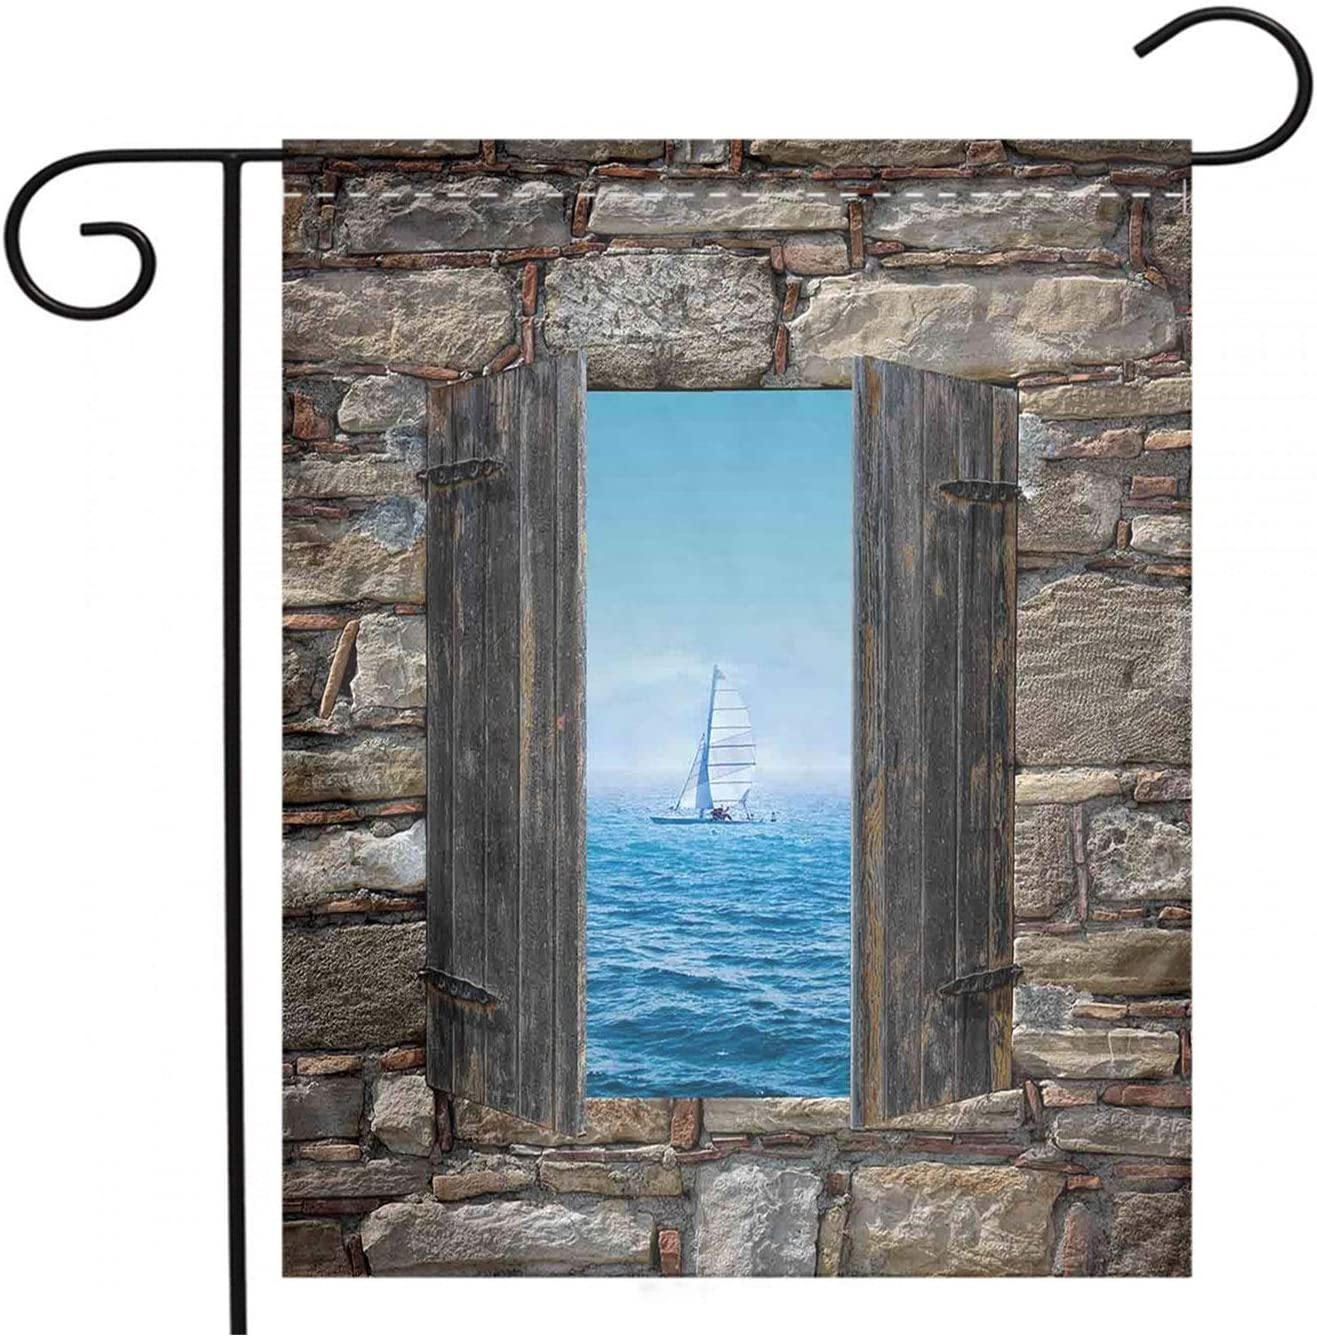 House Garden Flag,double Sided,outdoor Yard Flags, House Decor Image Of A Sailing Boat From Stone Window Narrow Perspective Idyllic Mediterranean,Home Party Holiday Garden Flags decor ,20x36 inch